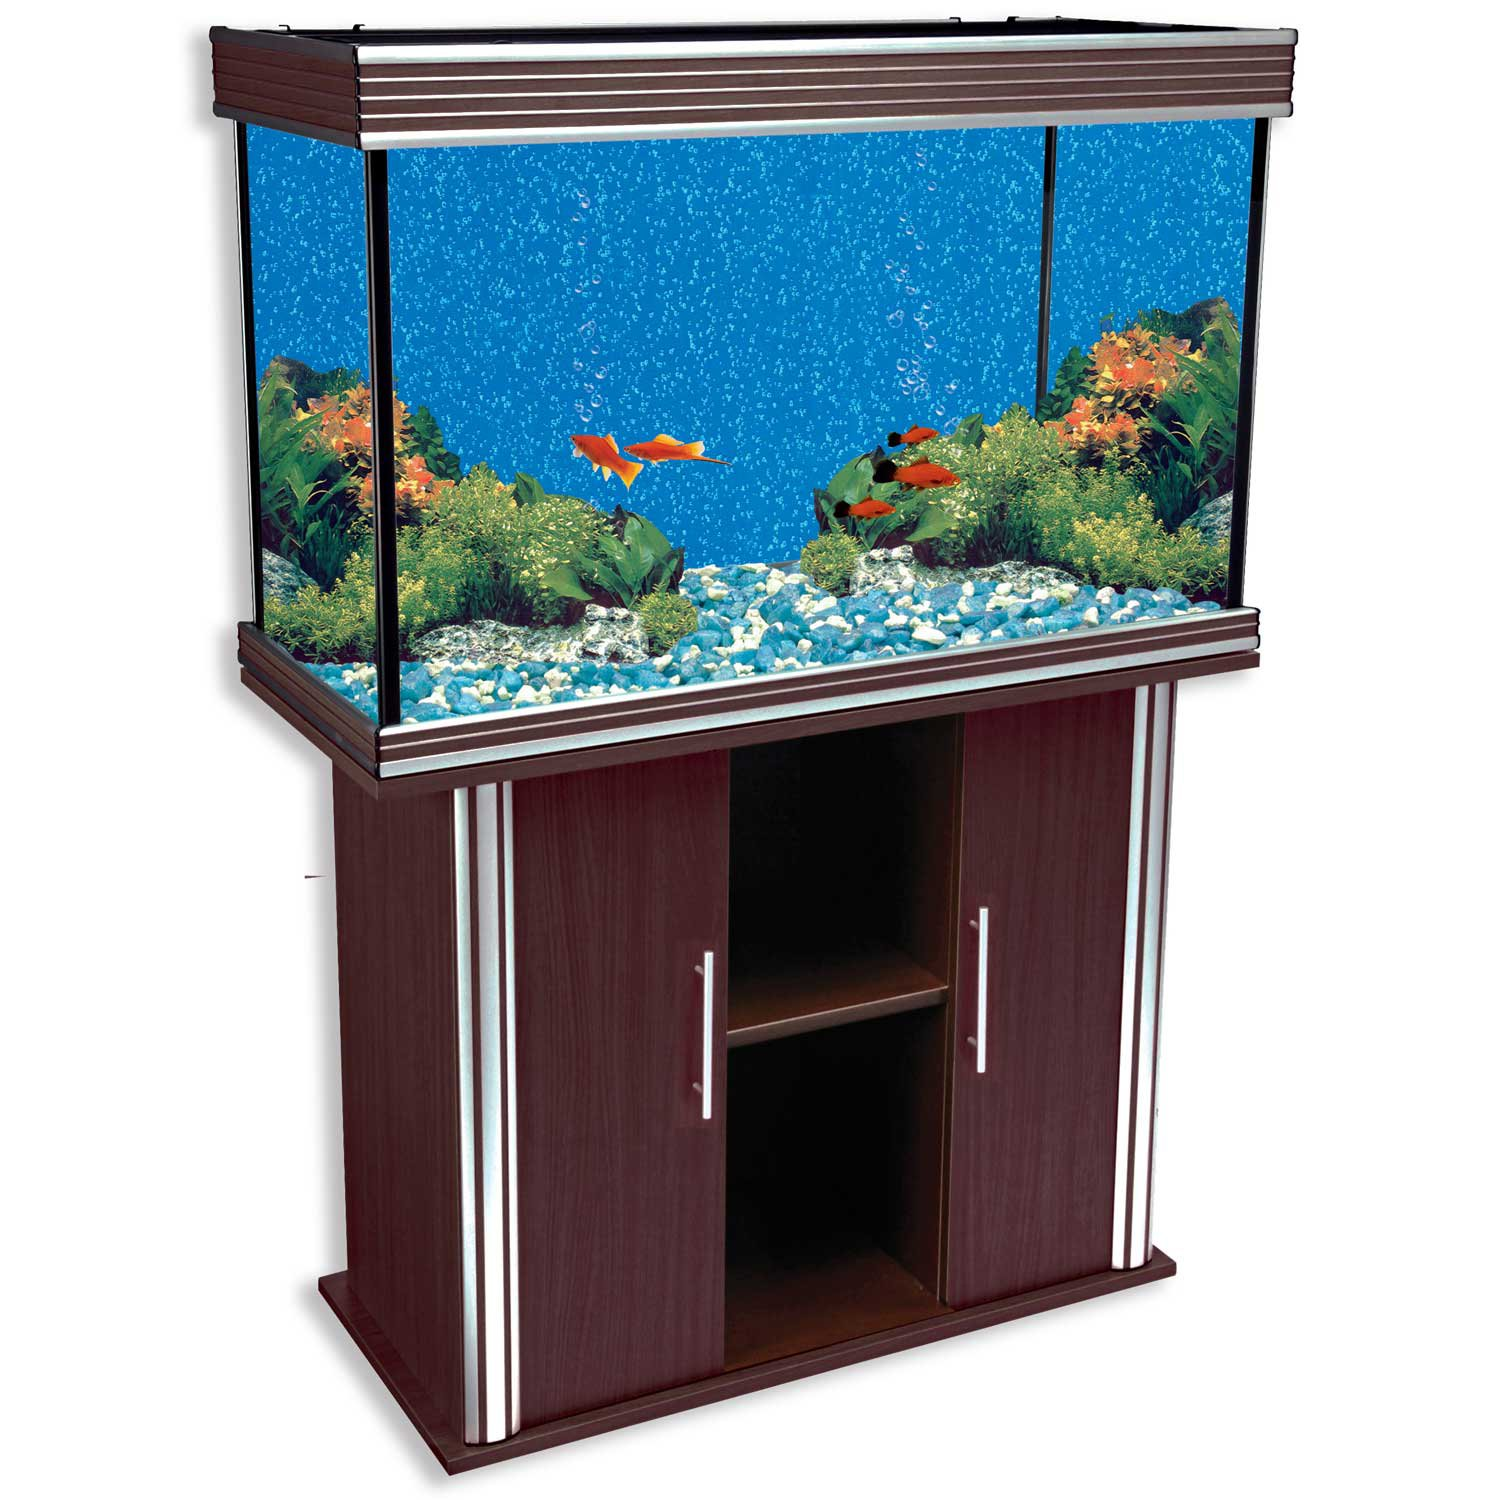 75 gallon aquarium petco 75 gallon upright aquarium for Petsmart fish tank stand